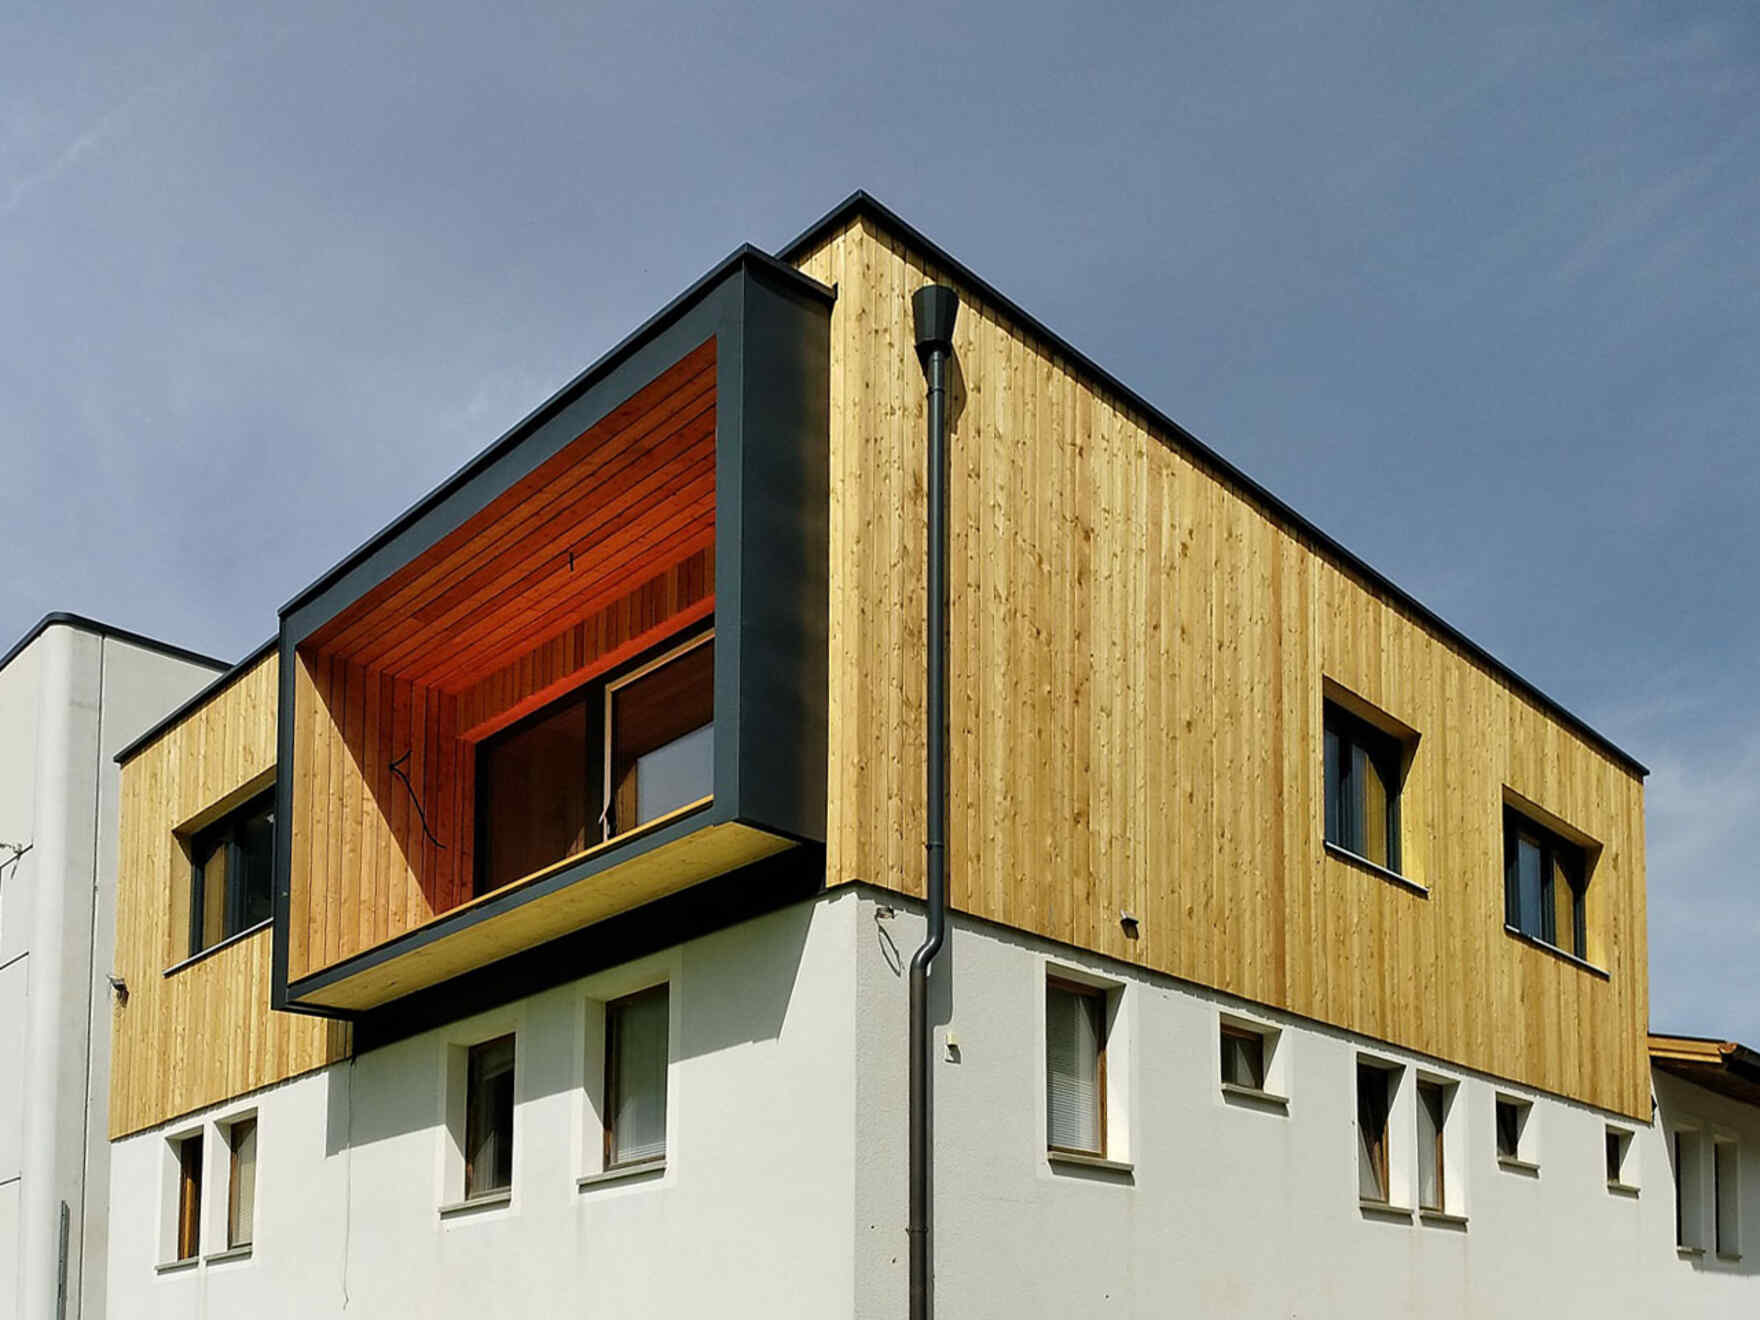 Prefabricated house Eldag